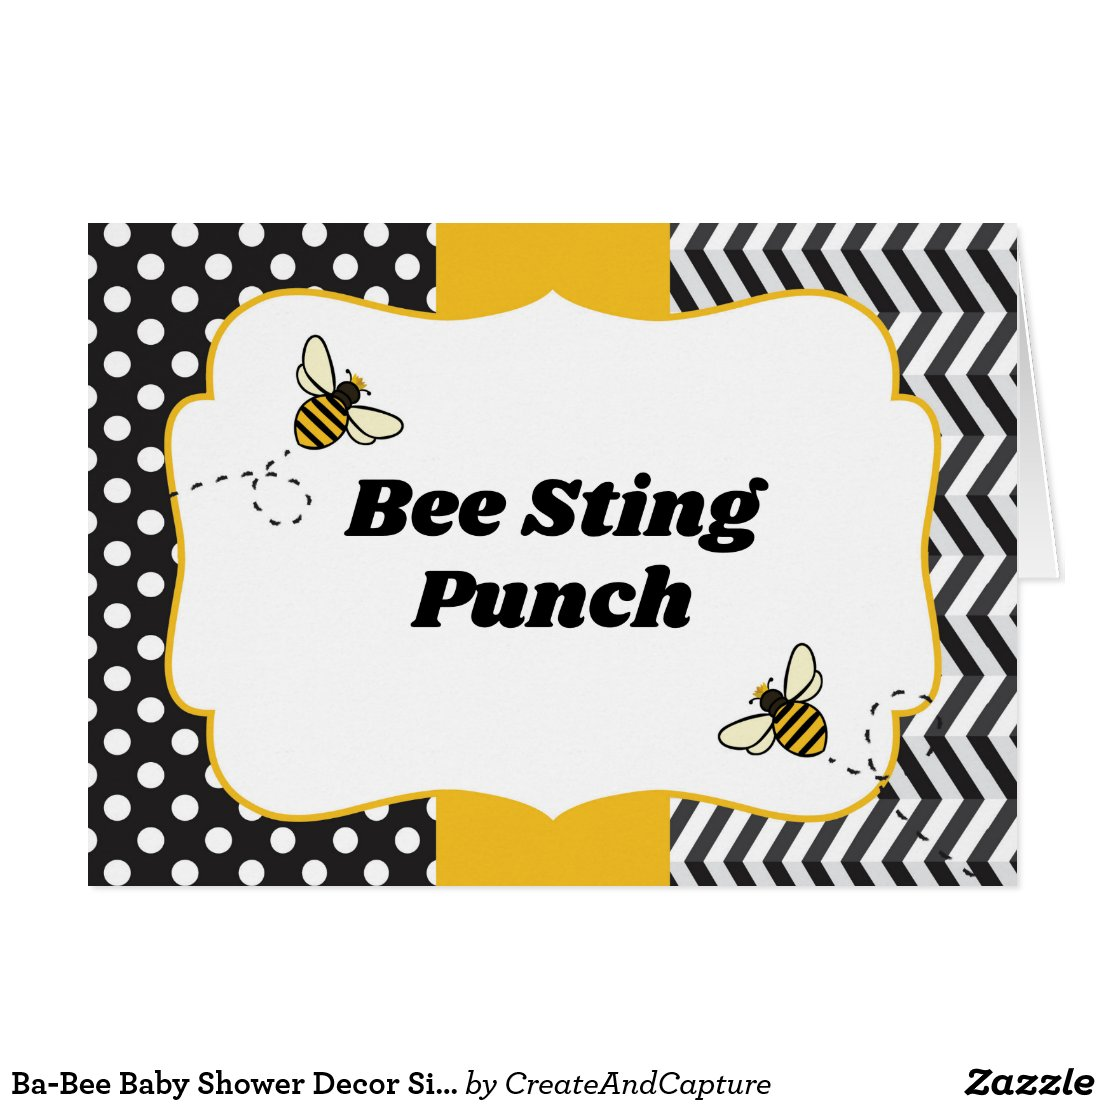 Ba-Bee Baby Shower Decor Signs